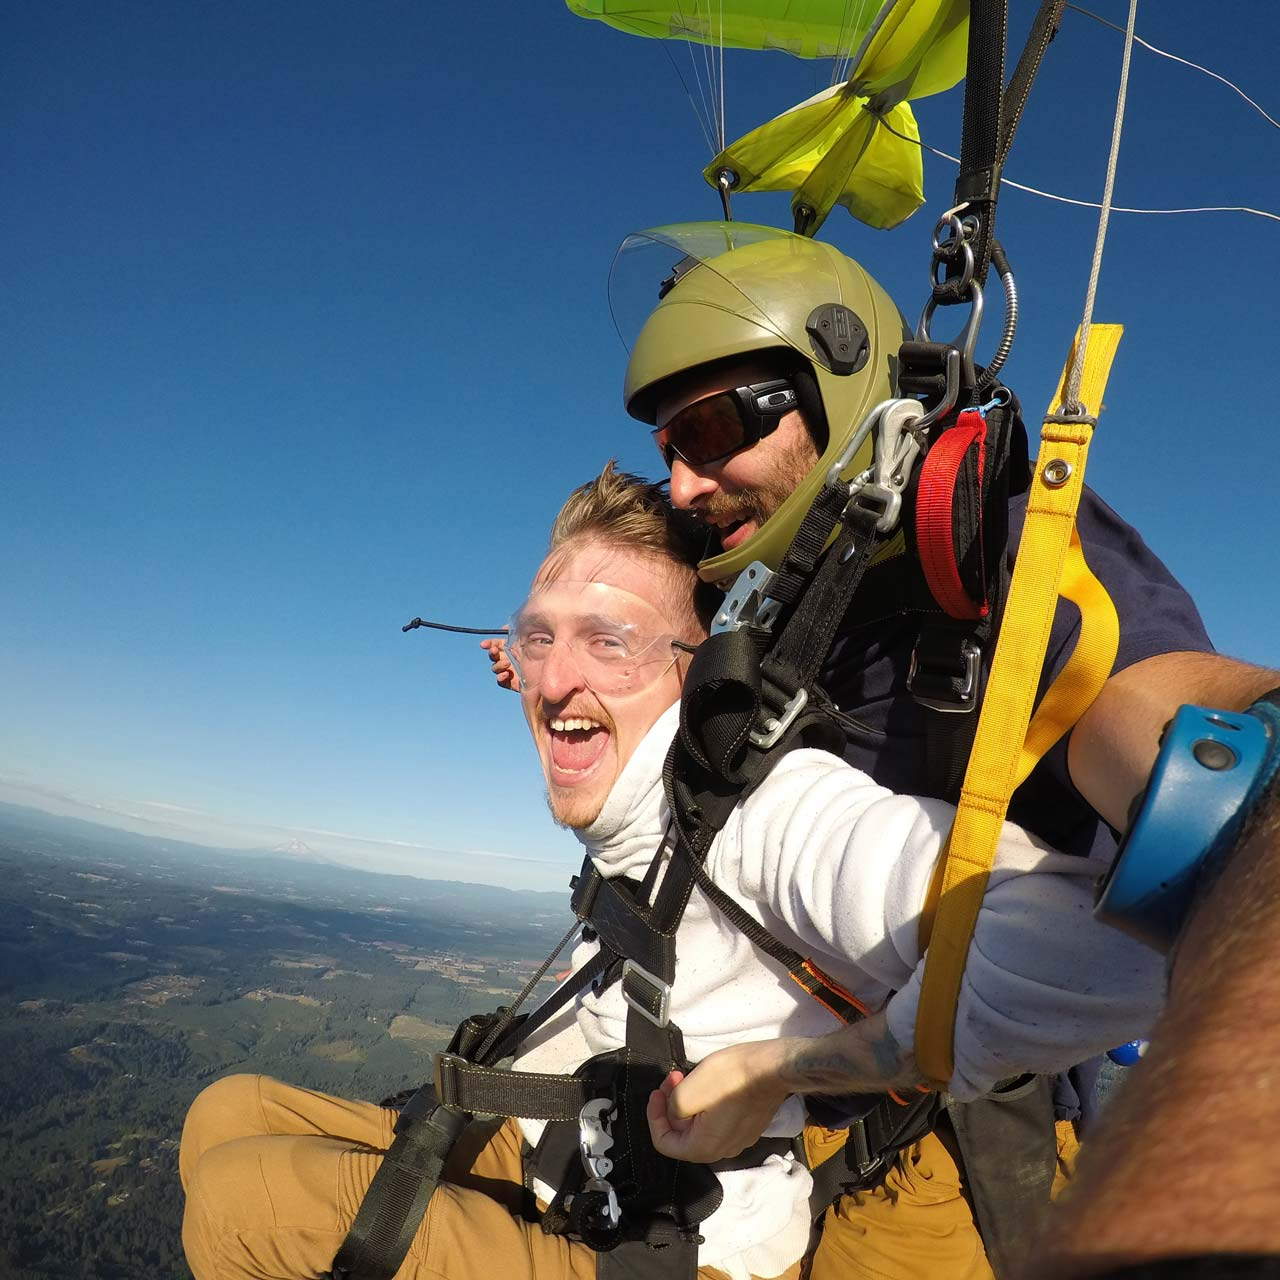 Young man with disability enjoying a canopy ride while tandem skydiving at PNW Skydiving near Portland, OR